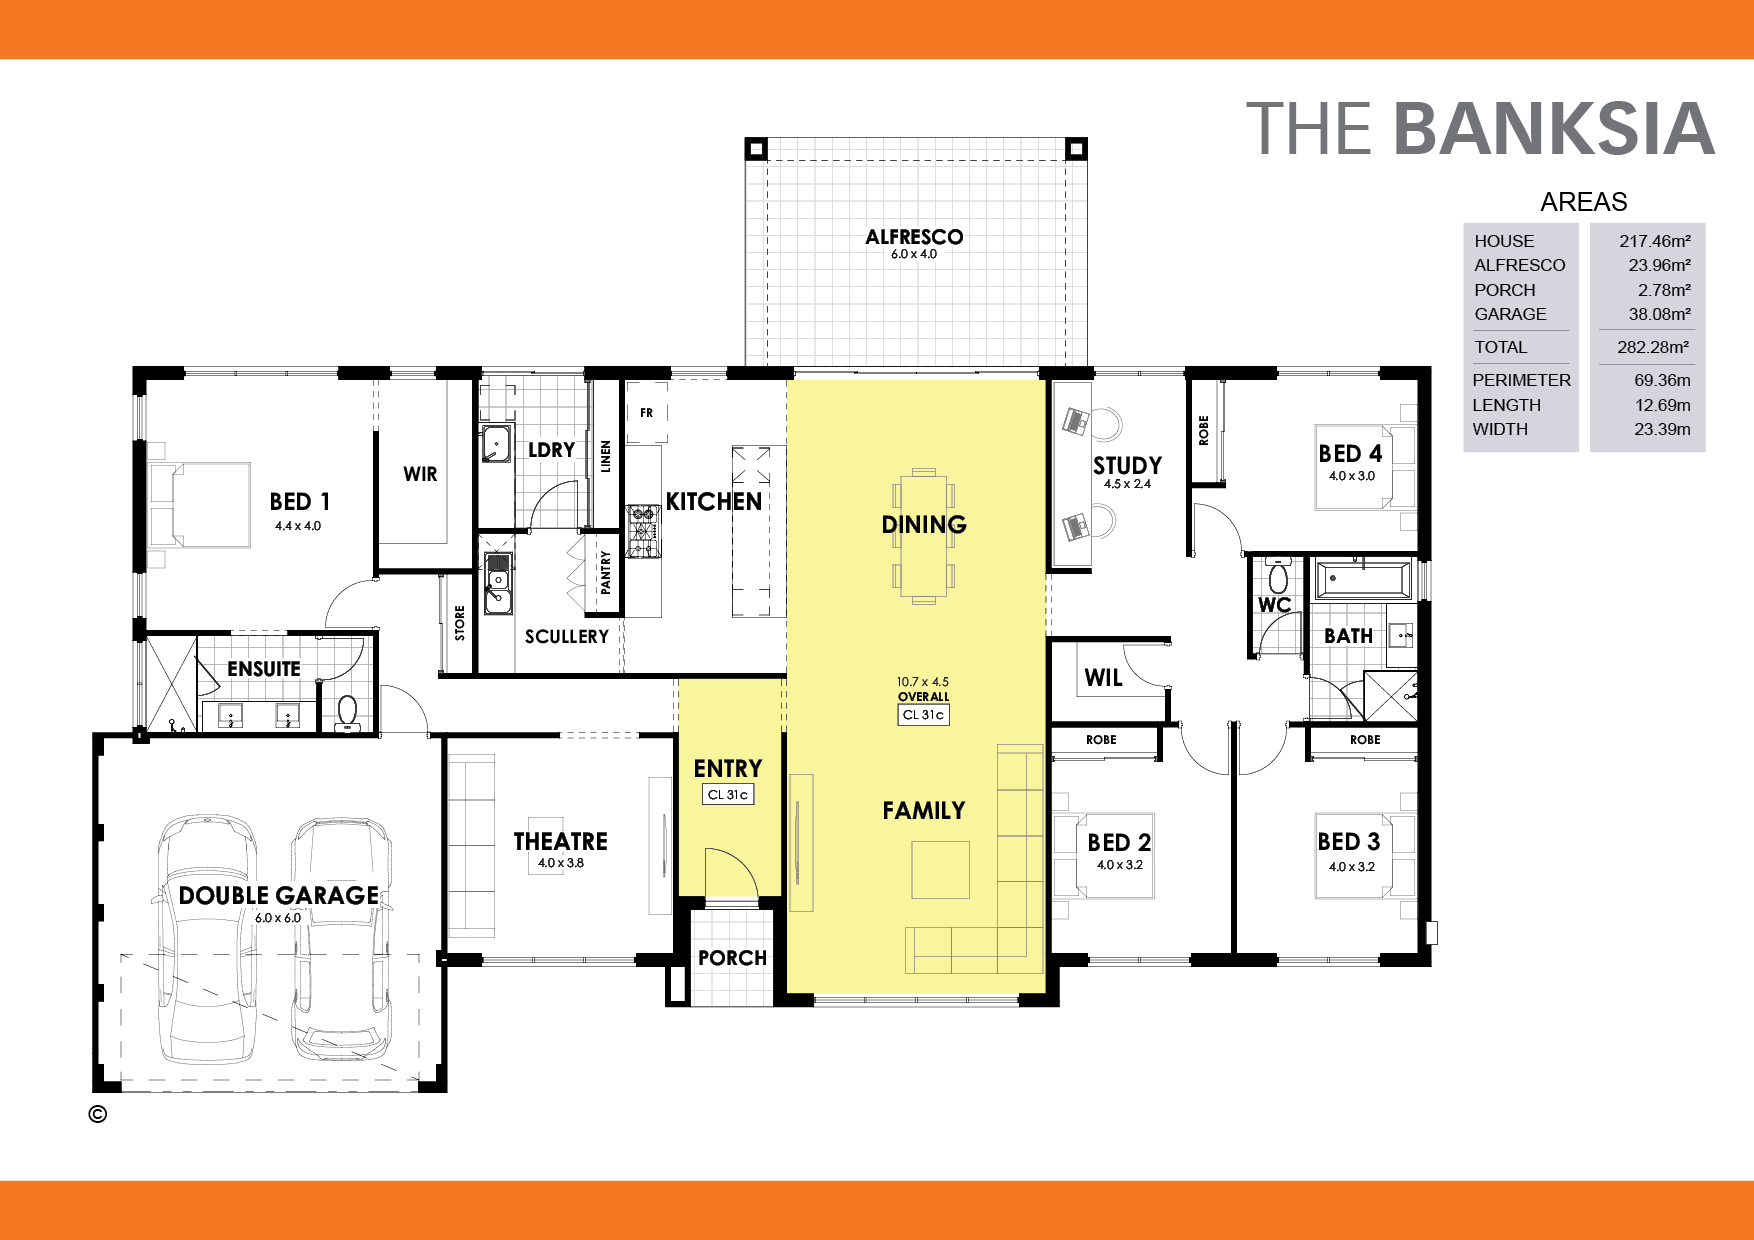 The Banksia Floorplan